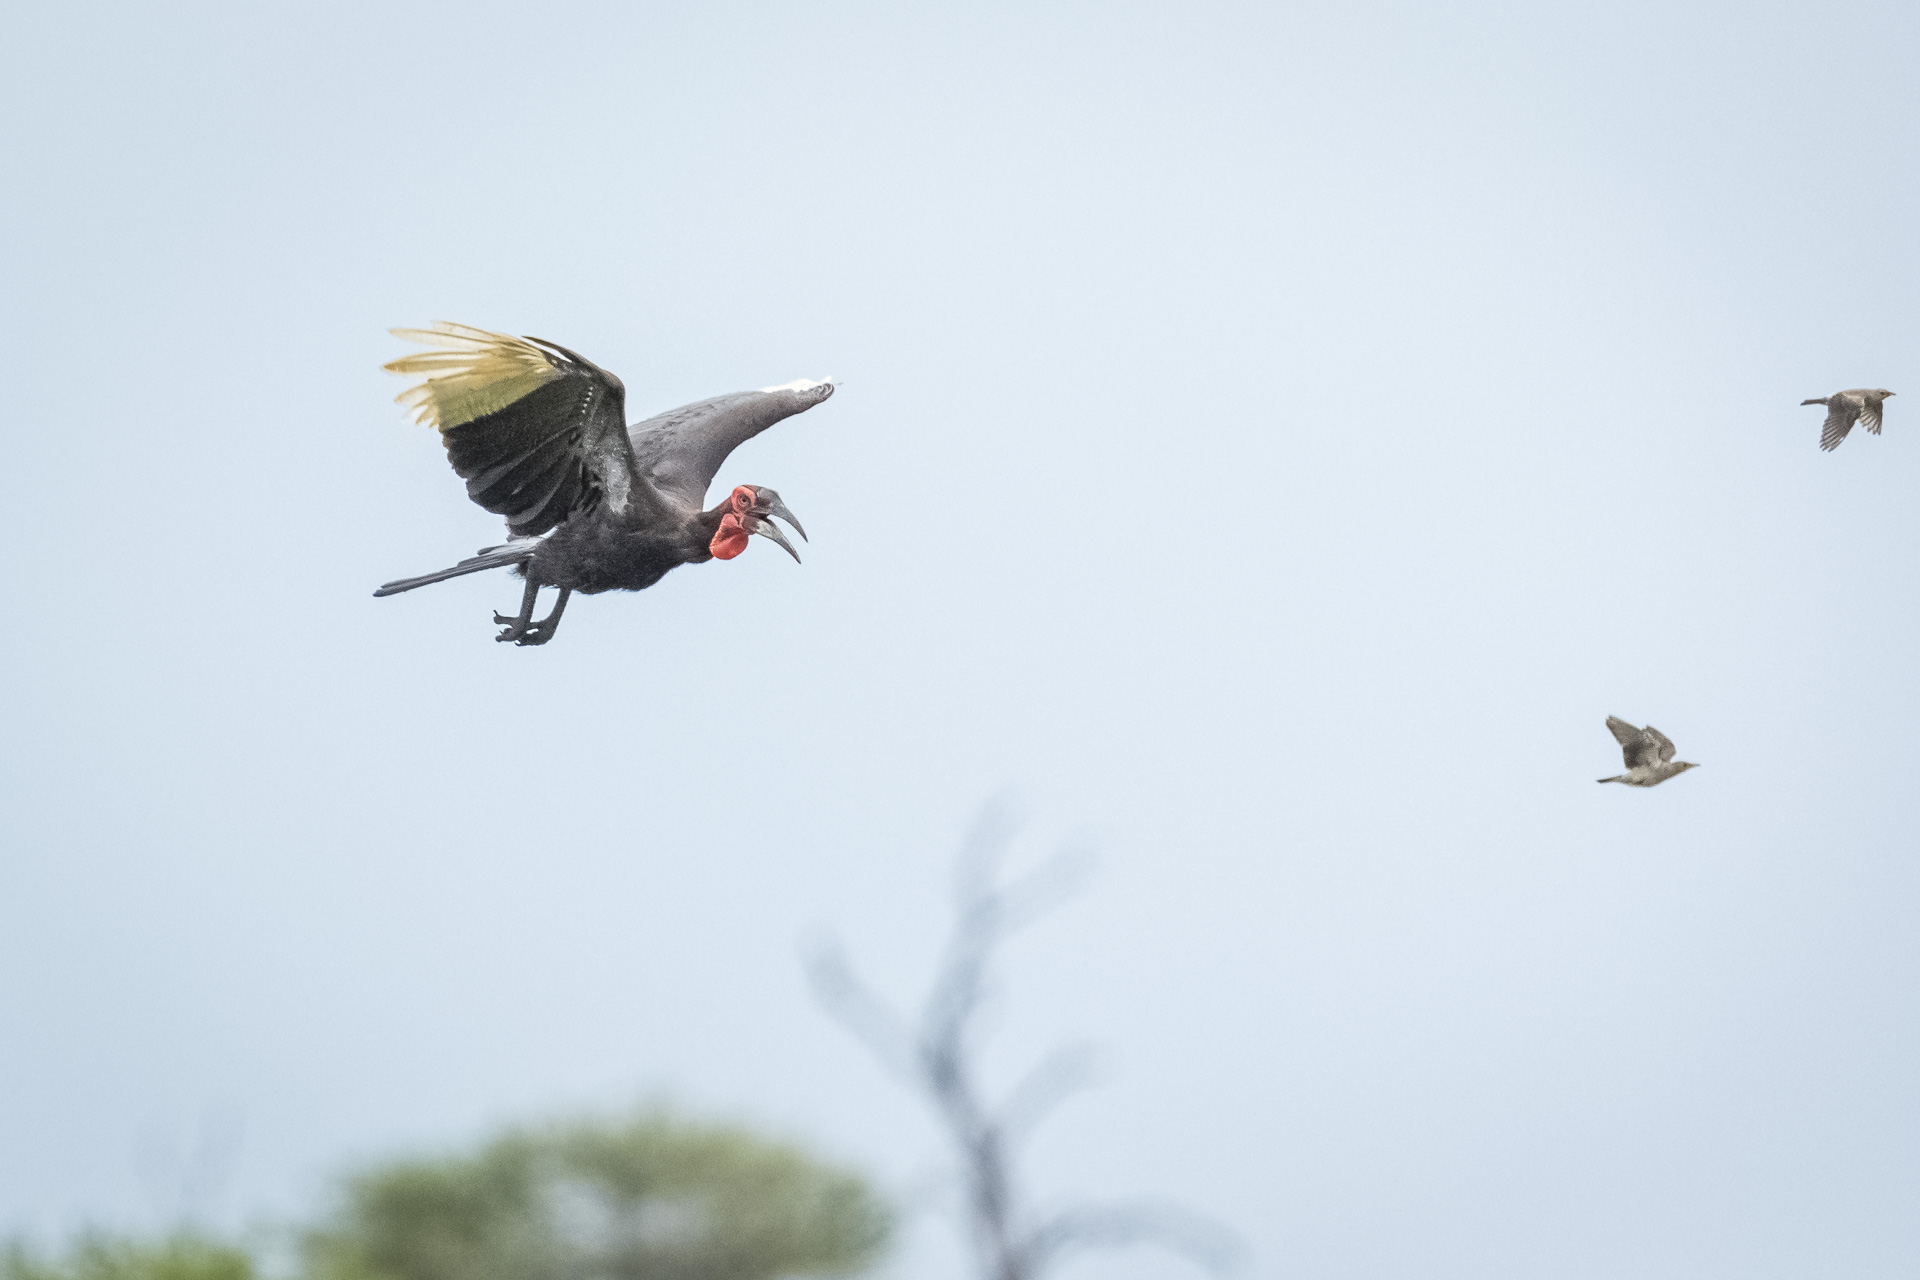 Private Day Safari in Kruger National Park image of ground hornbill in flight